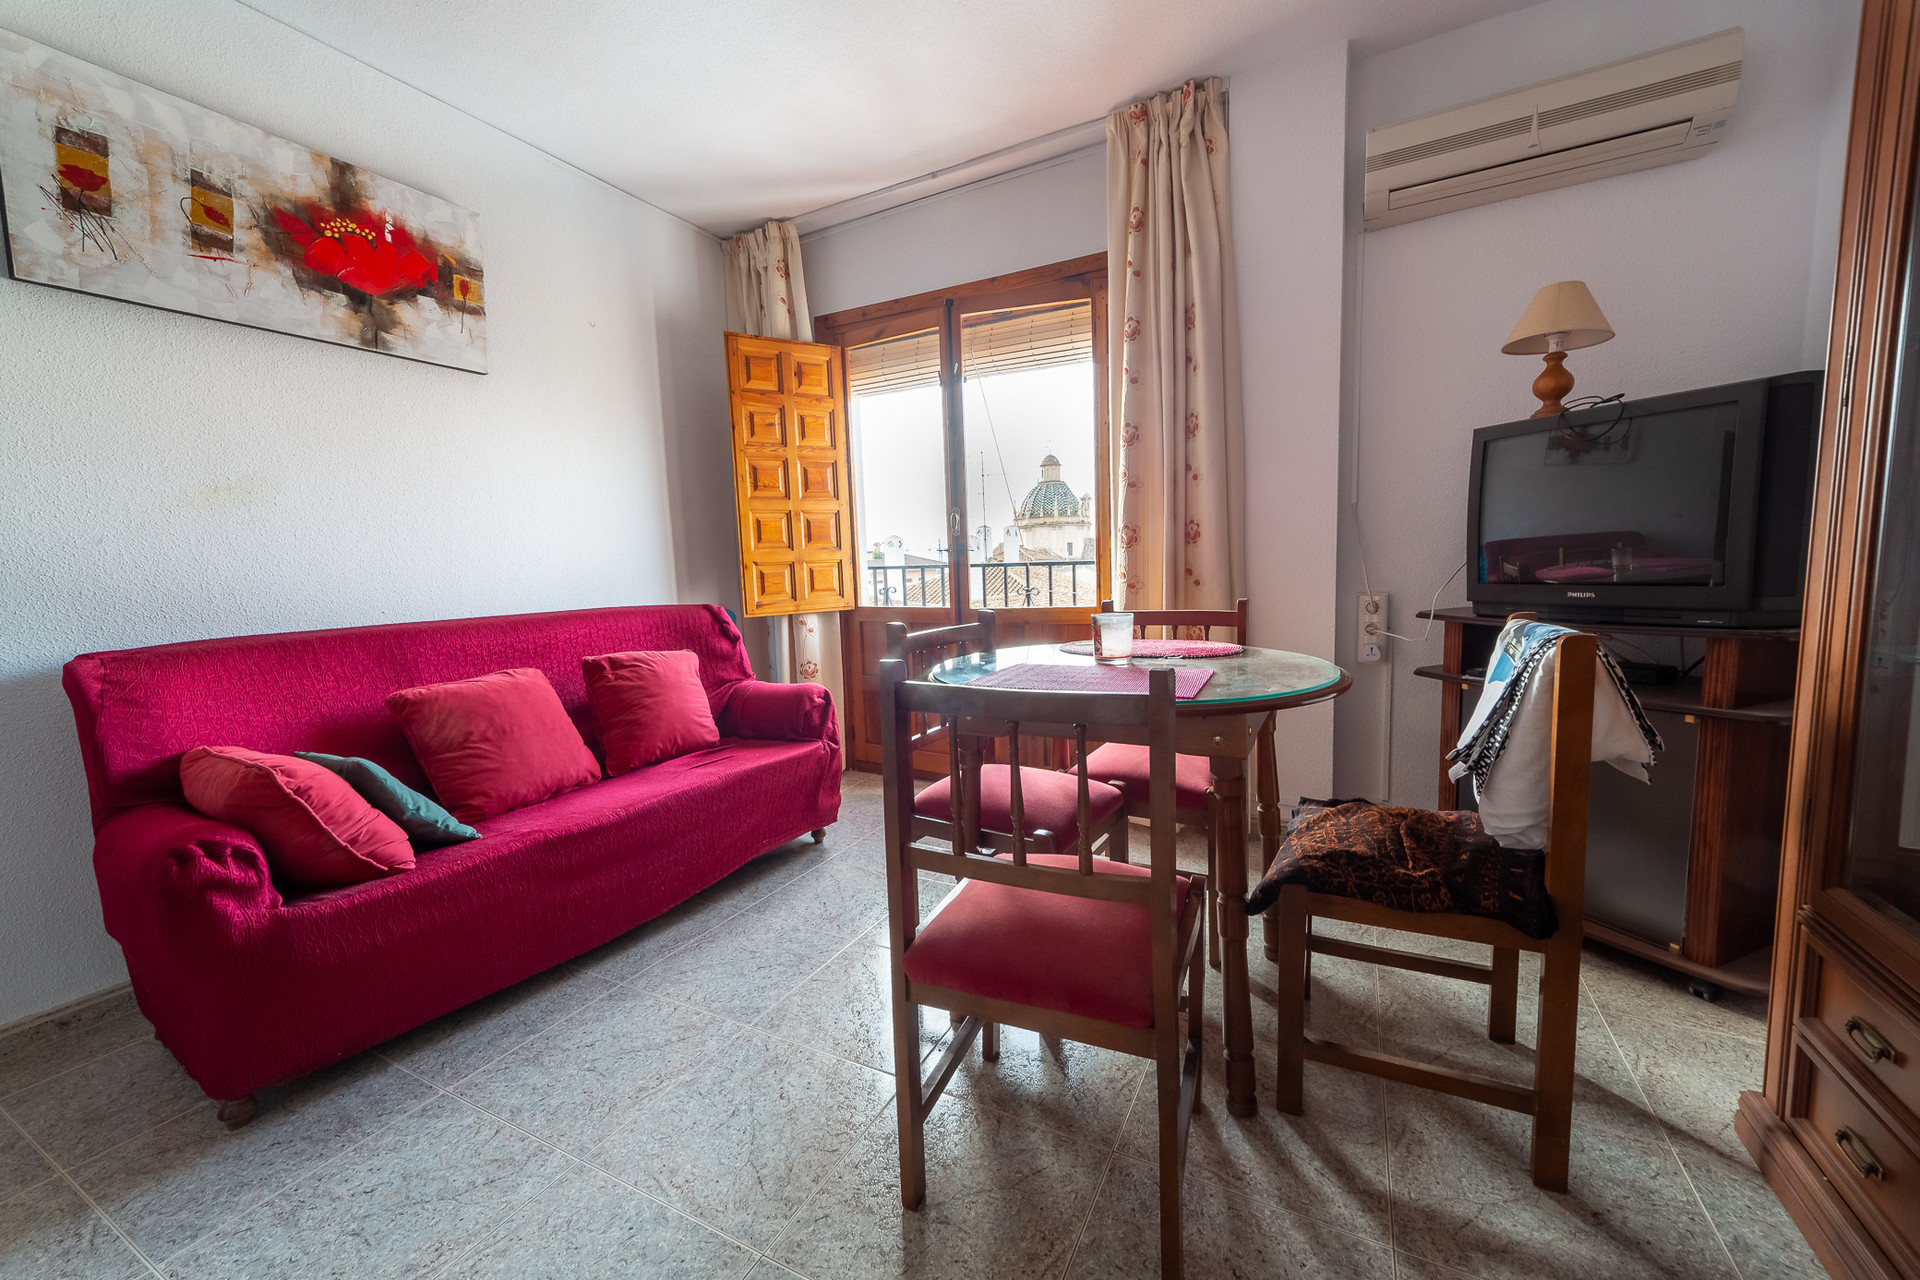 sunny-double-room-realejo-district-1fdb8c6141cde02b02390791a3bdc444